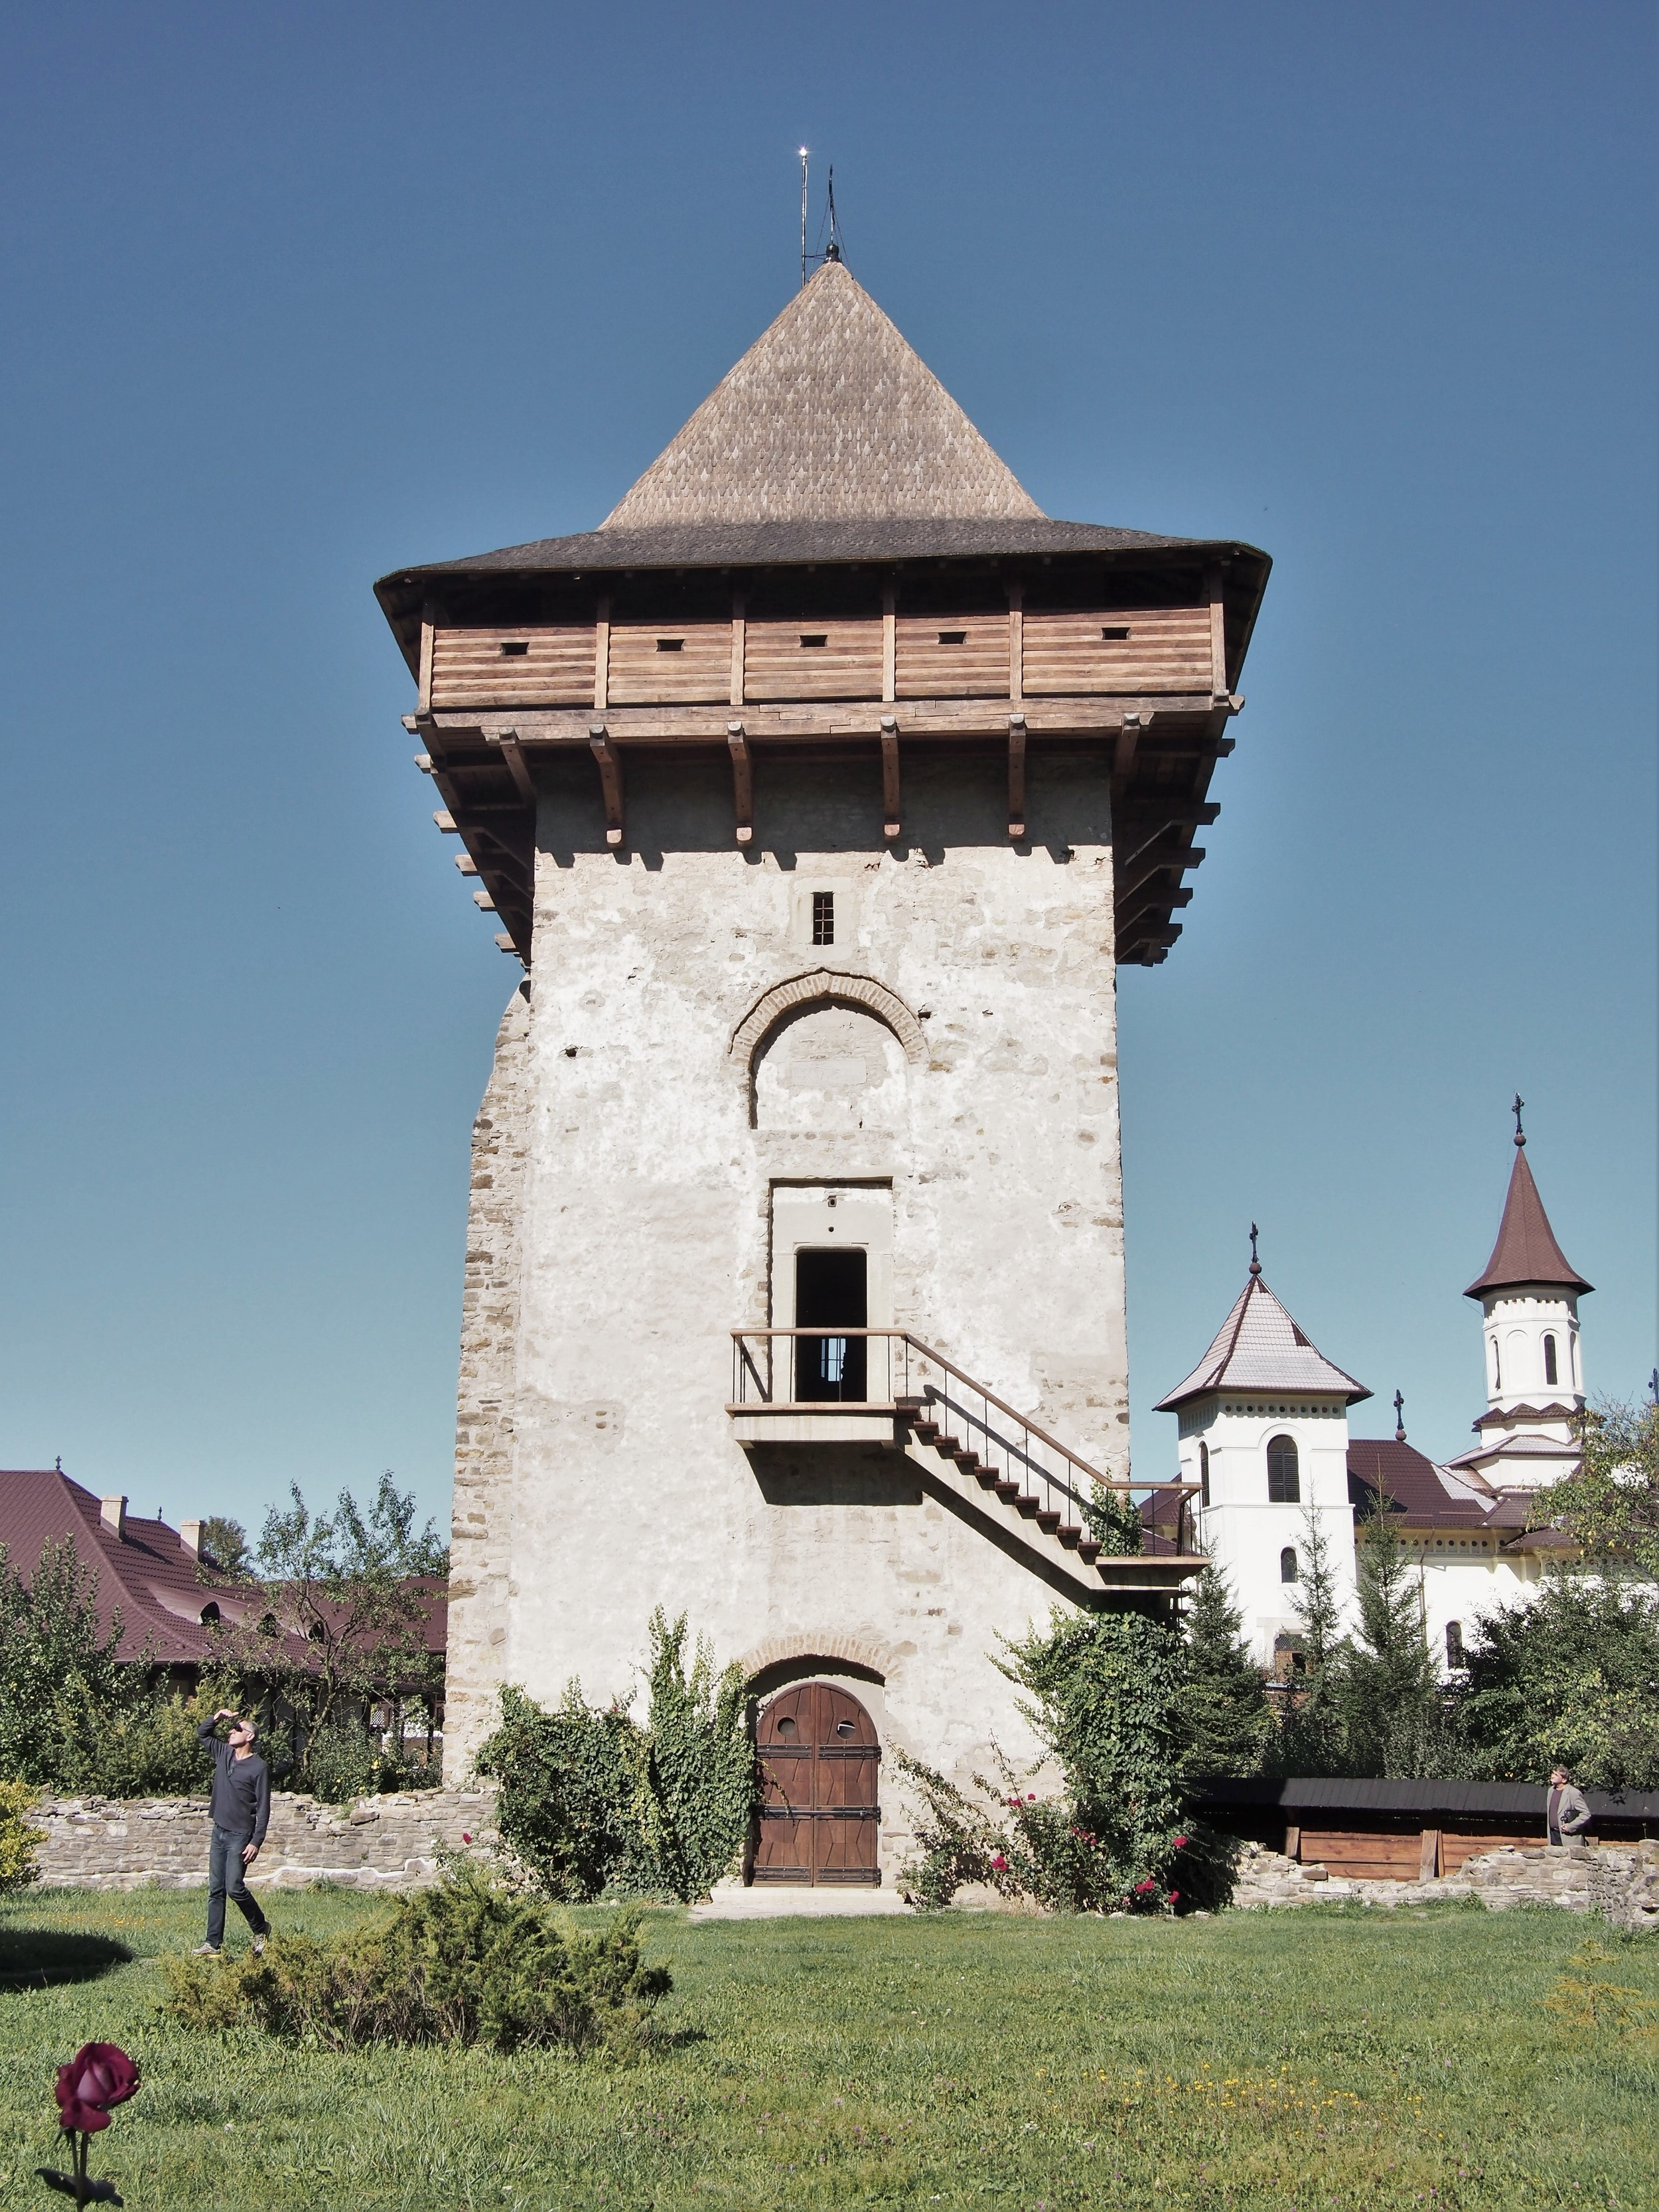 This tower was bigger than the church